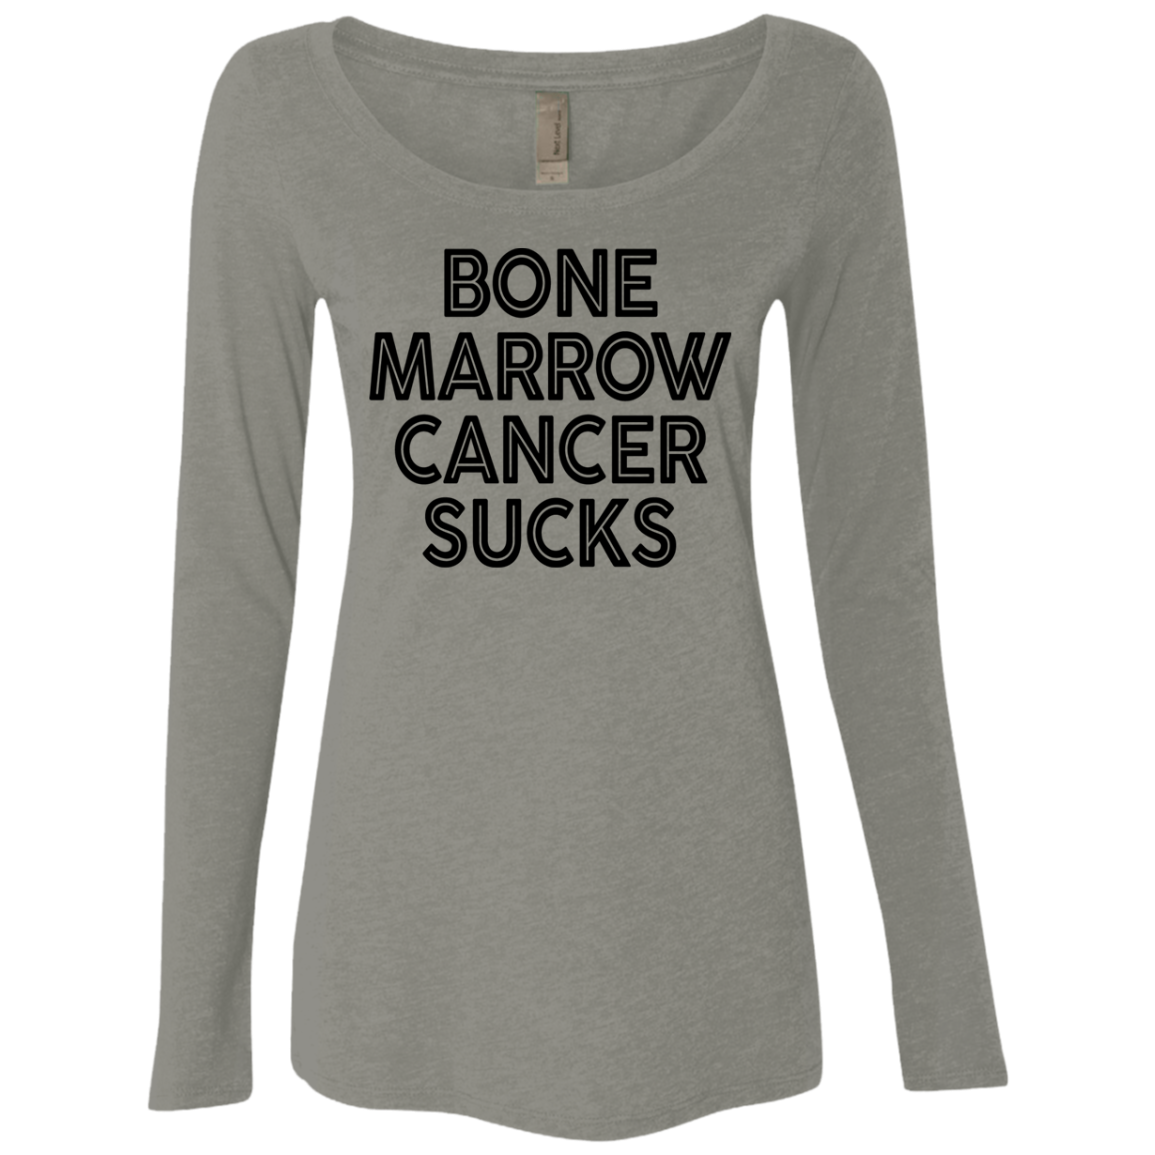 Bone Marrow Cancer Sucks Women's Long Sleeve Tee